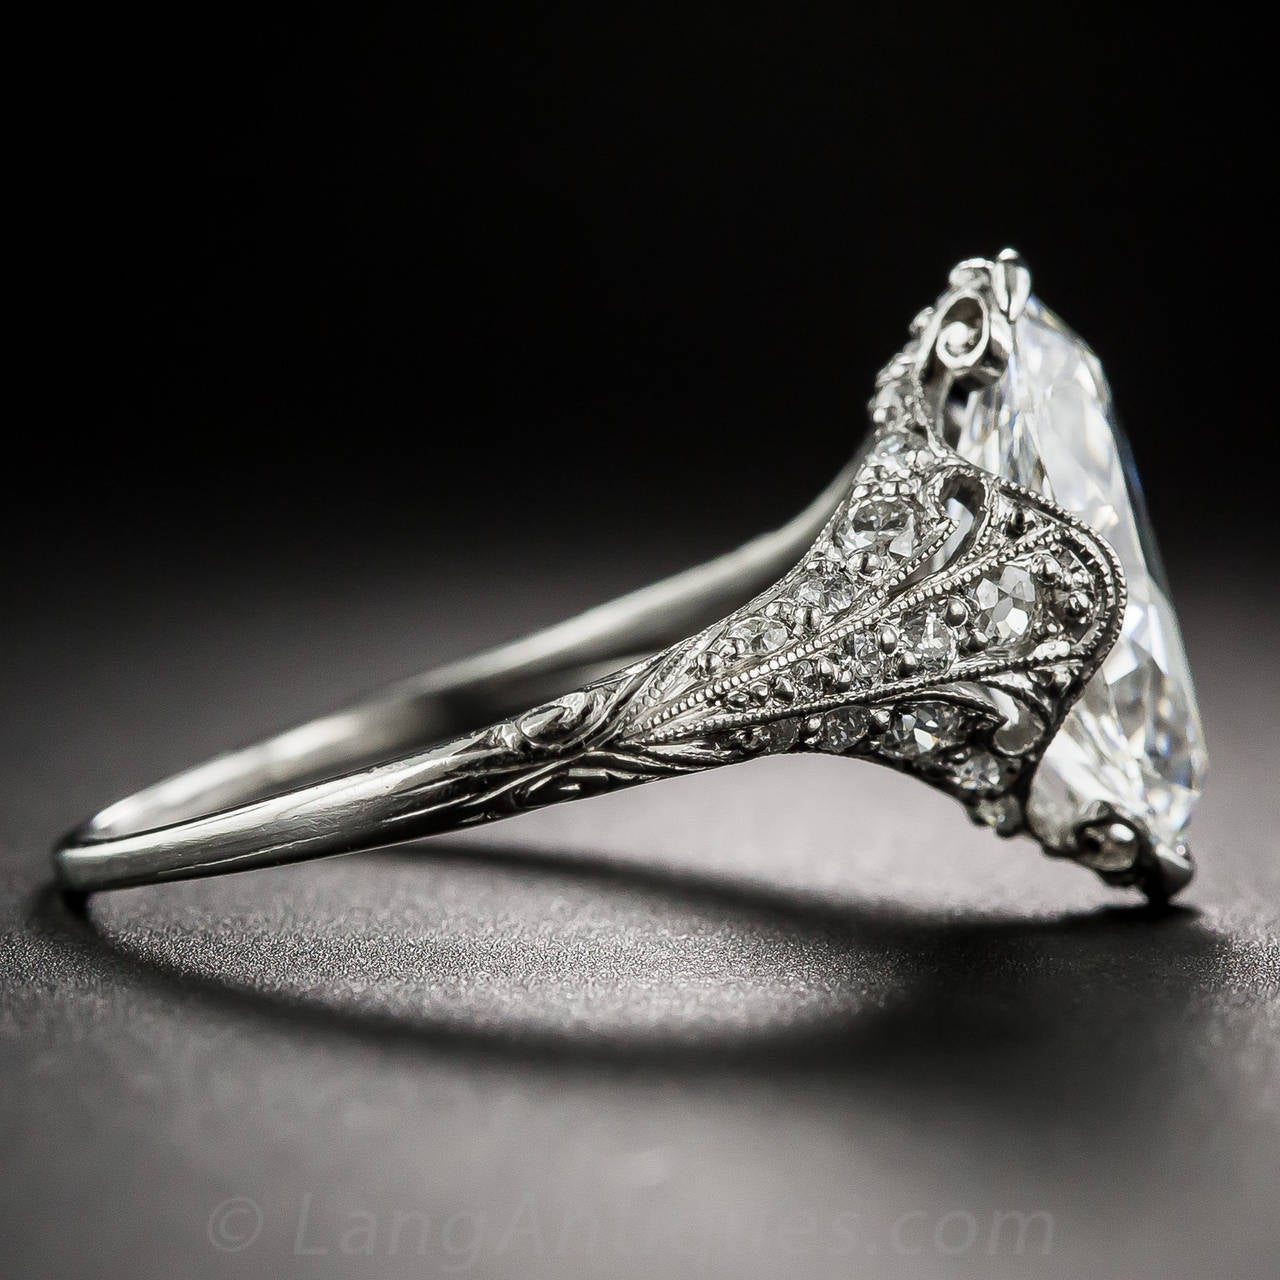 Tiffany & Co. Edwardian 3.14 Carat Marquise Diamond Platinum Ring In Excellent Condition For Sale In San Francisco, CA